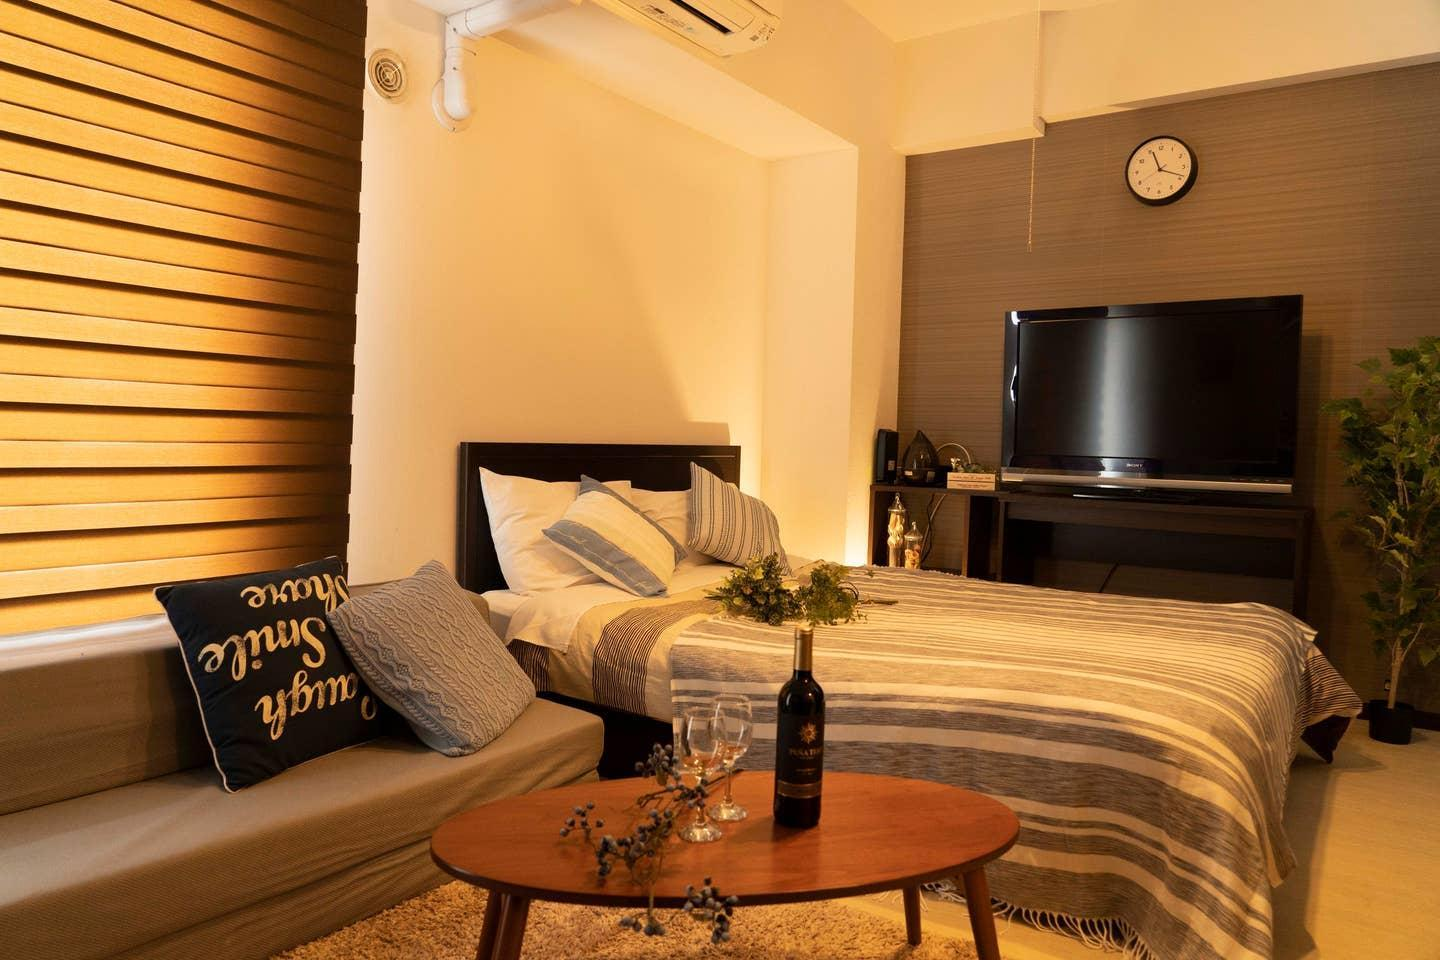 BH405  Special Price  Stylish Apt In SAPPORO